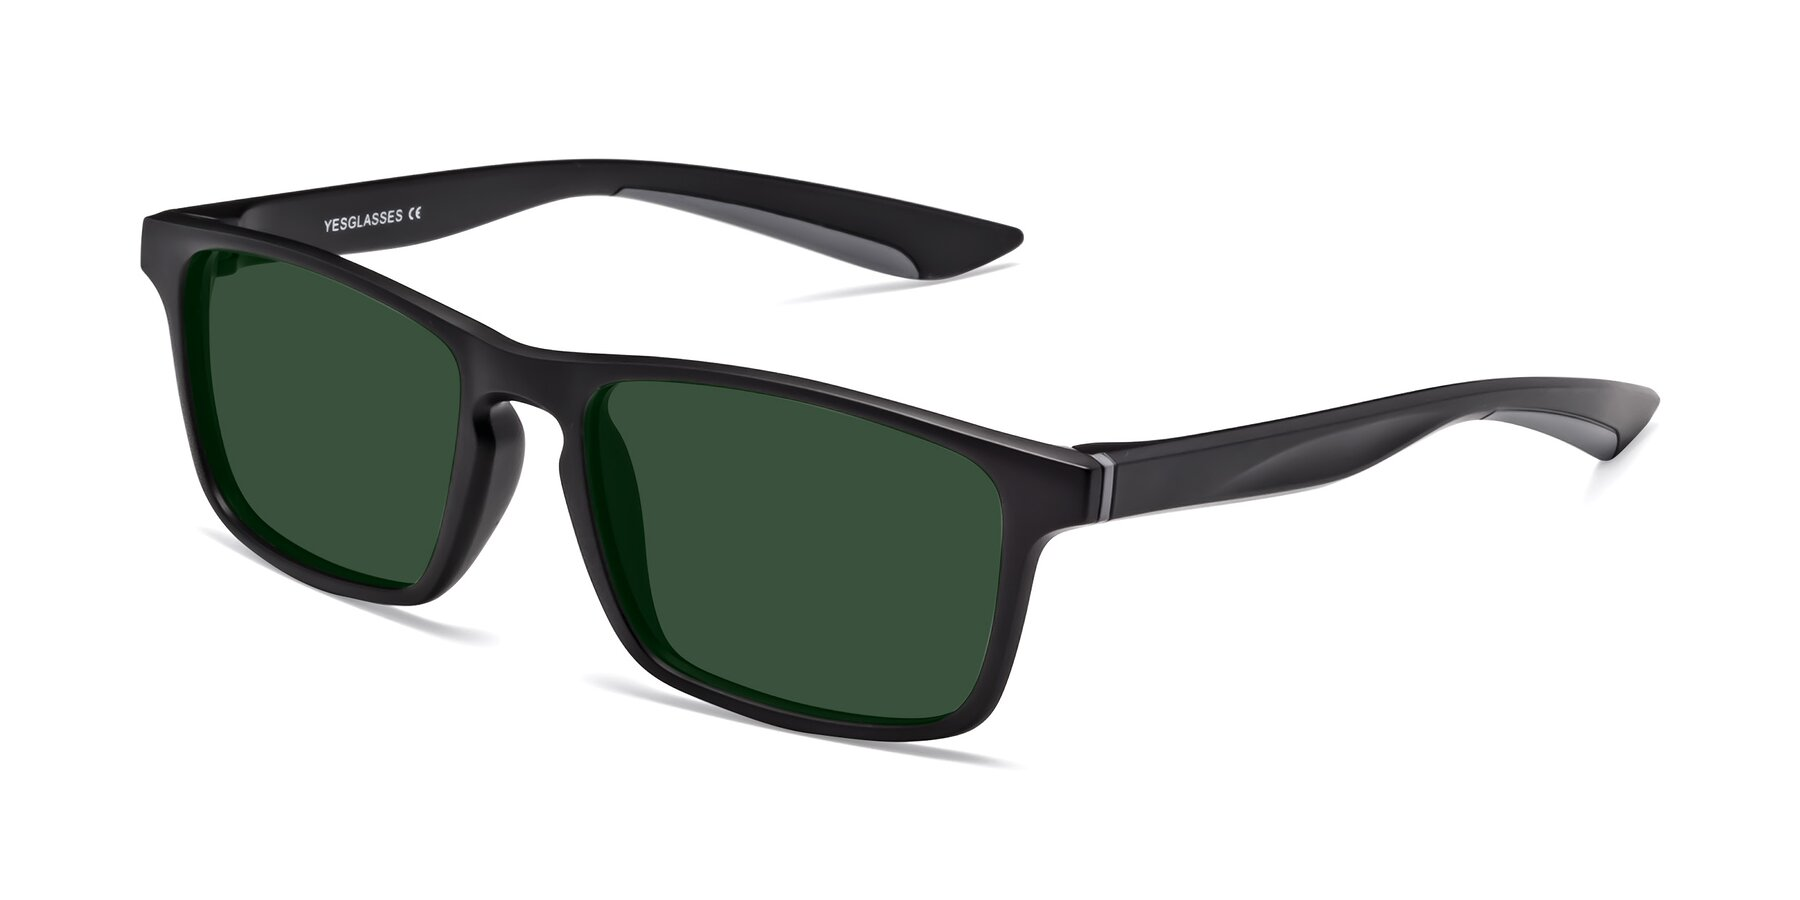 Angle of Passion in Matte Black-Gray with Green Tinted Lenses